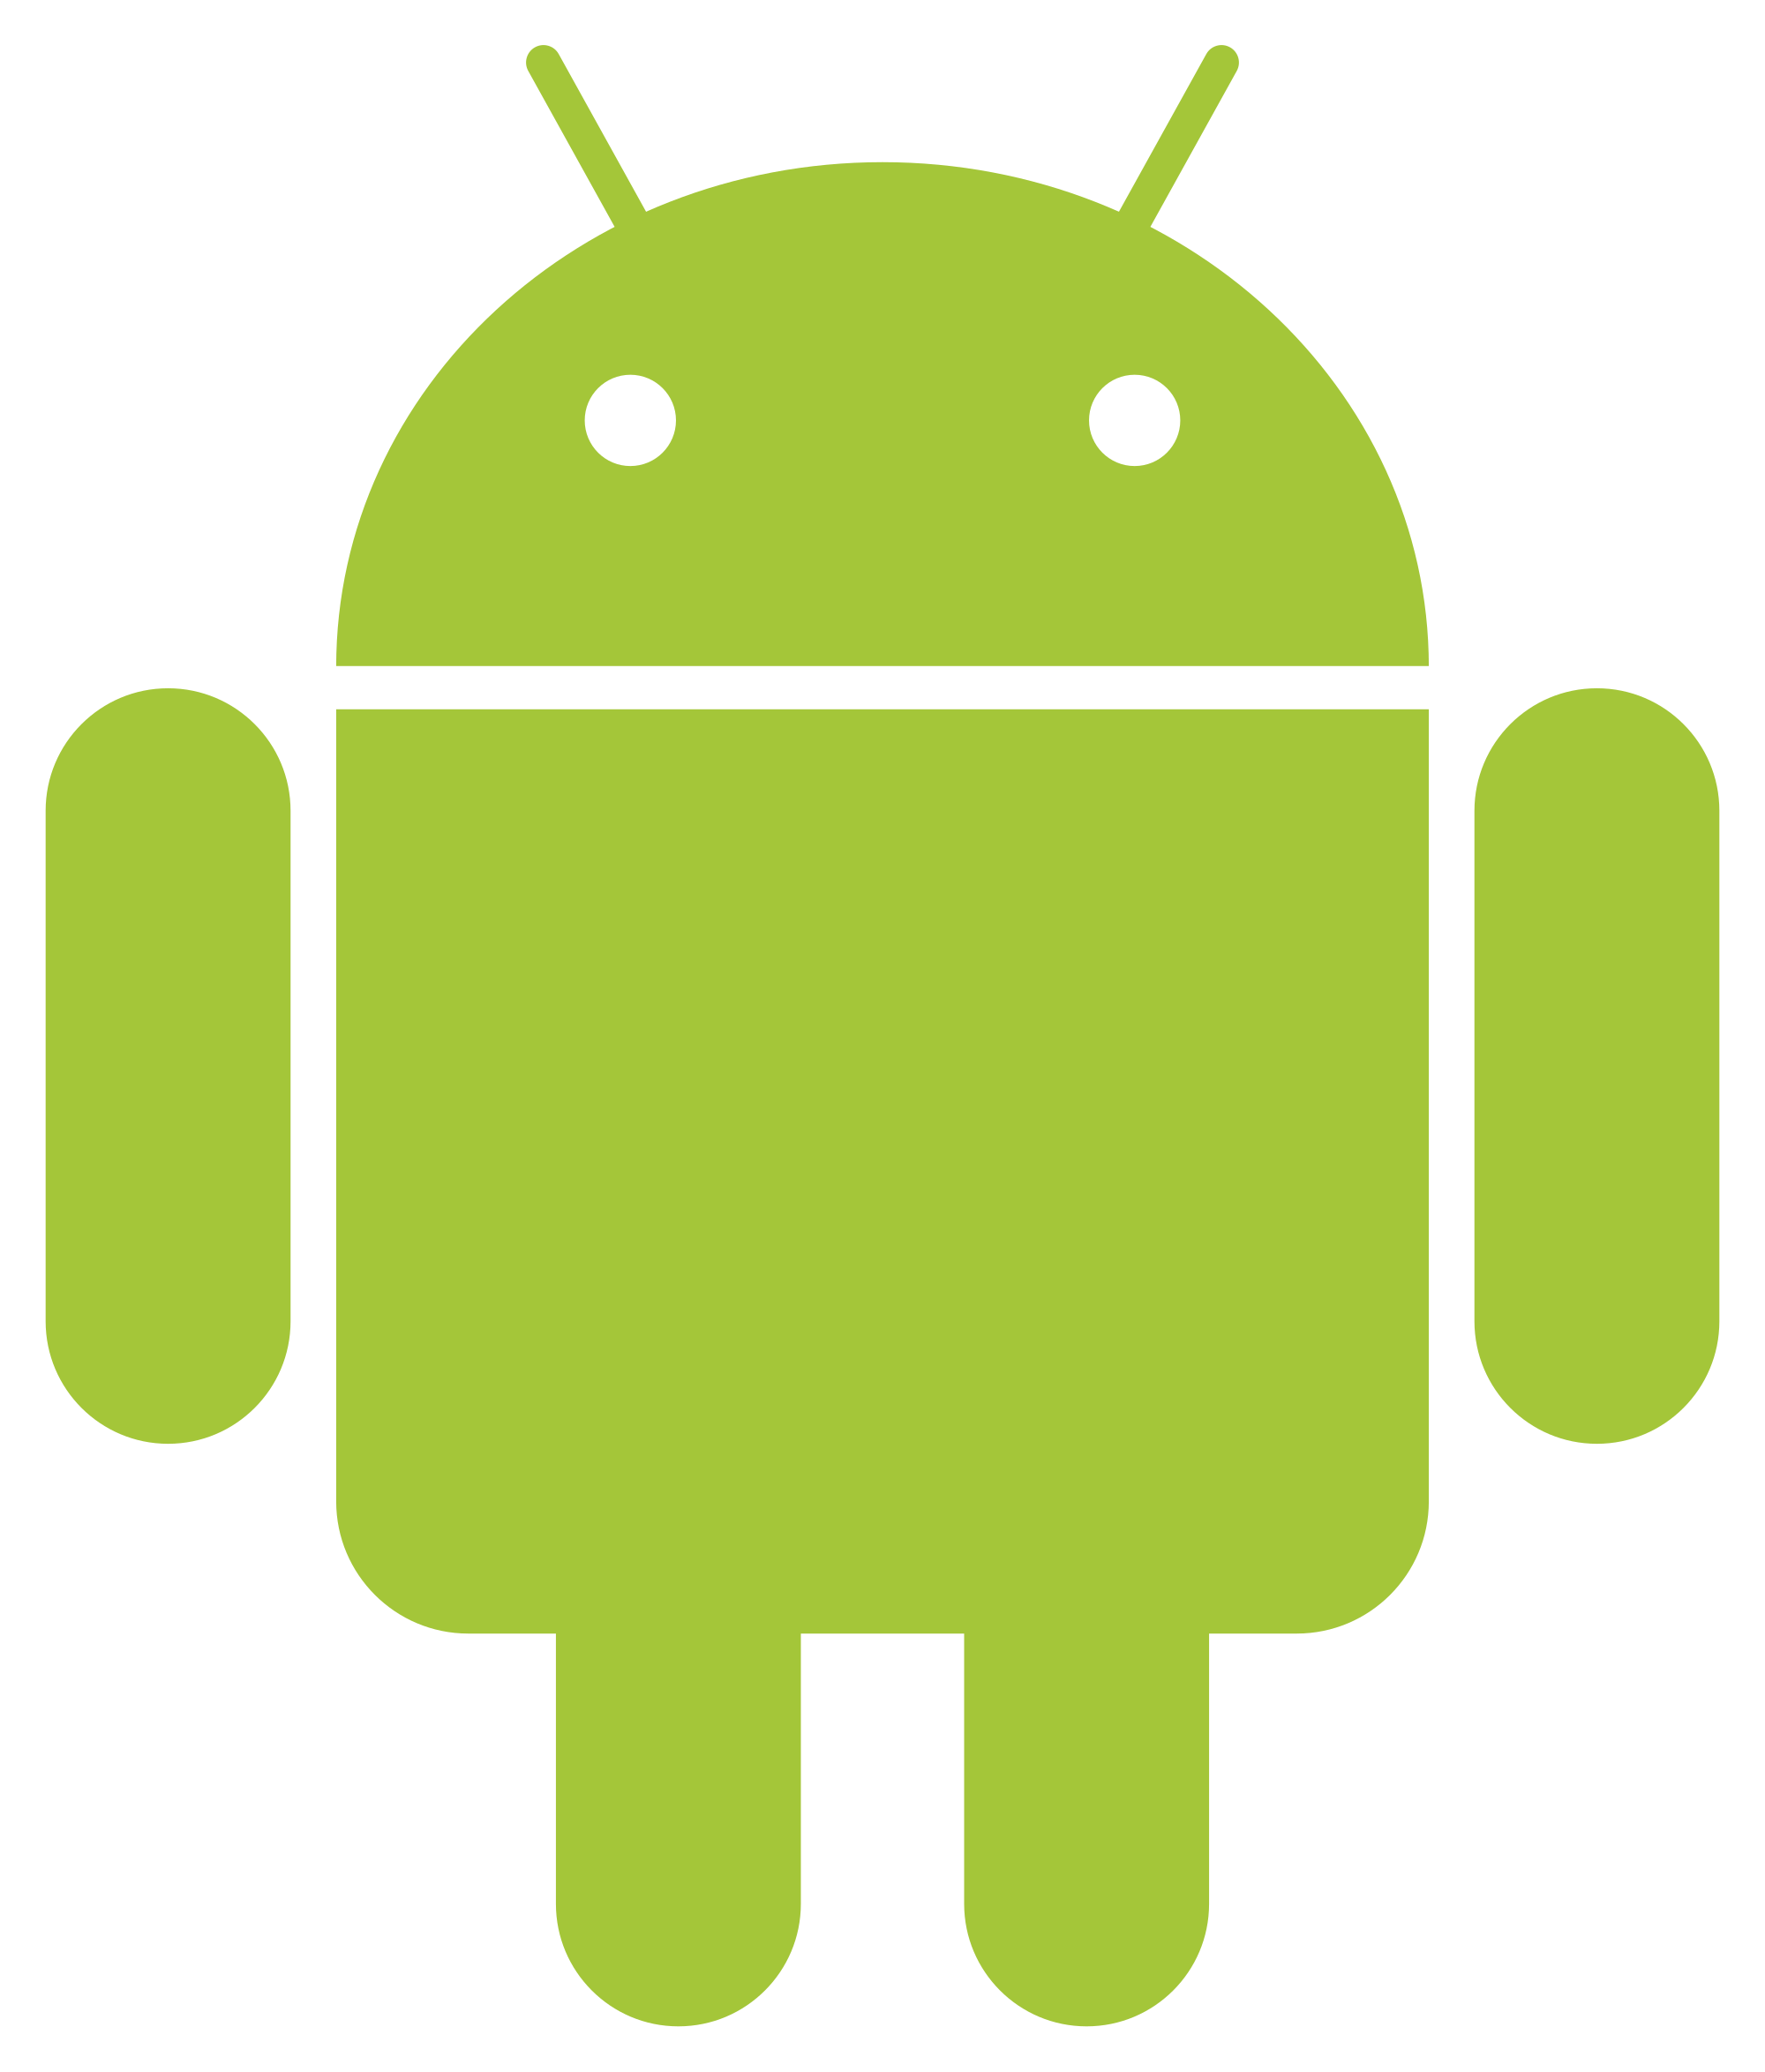 Android svg #18, Download drawings